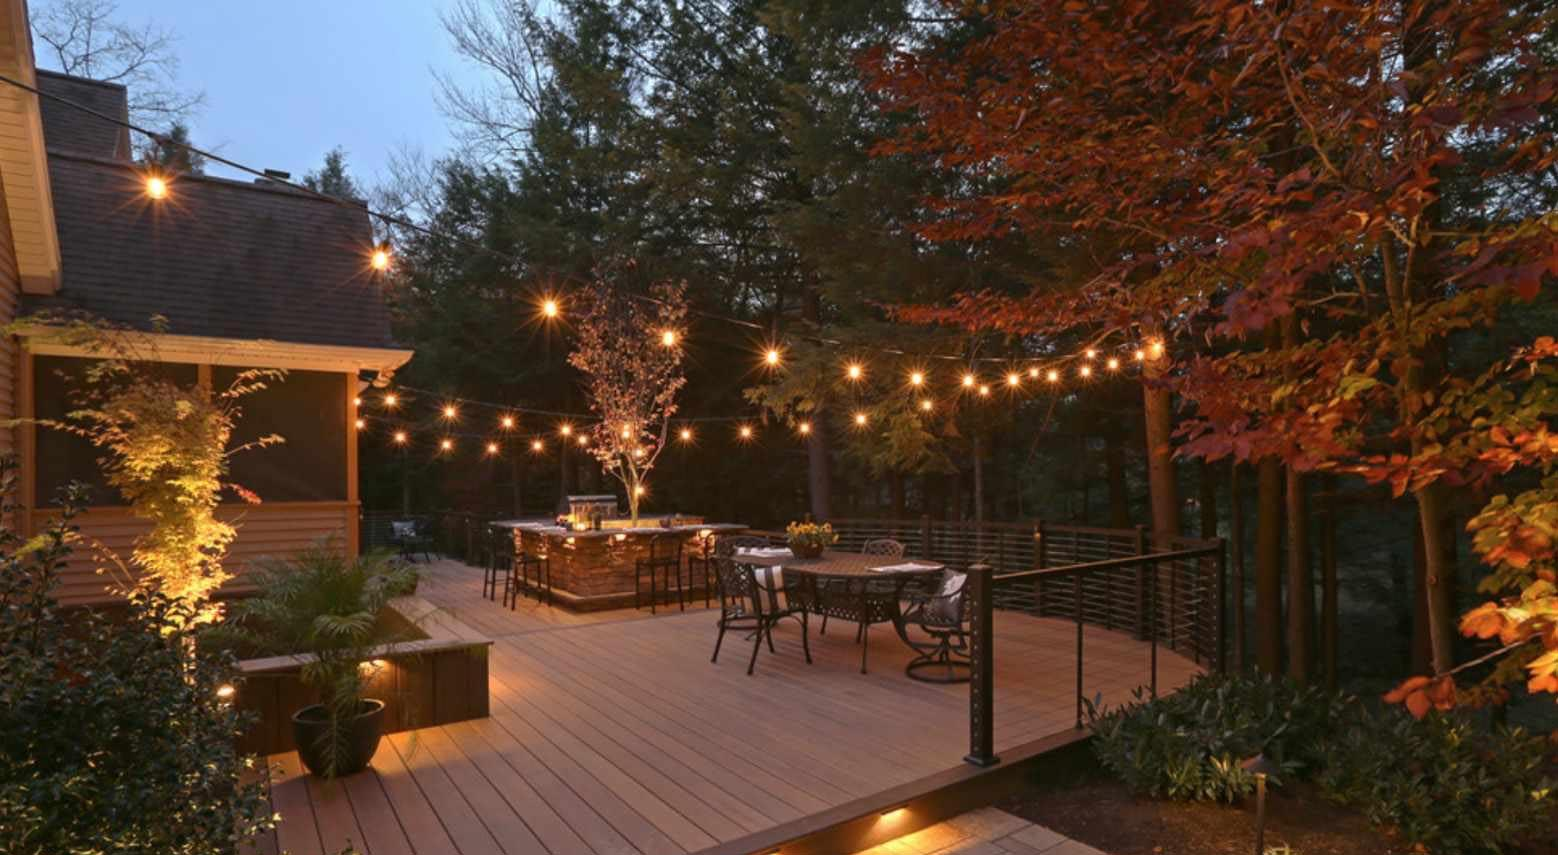 4 Ways to Impress Friends, Family & Neighbors with Solar Lighting